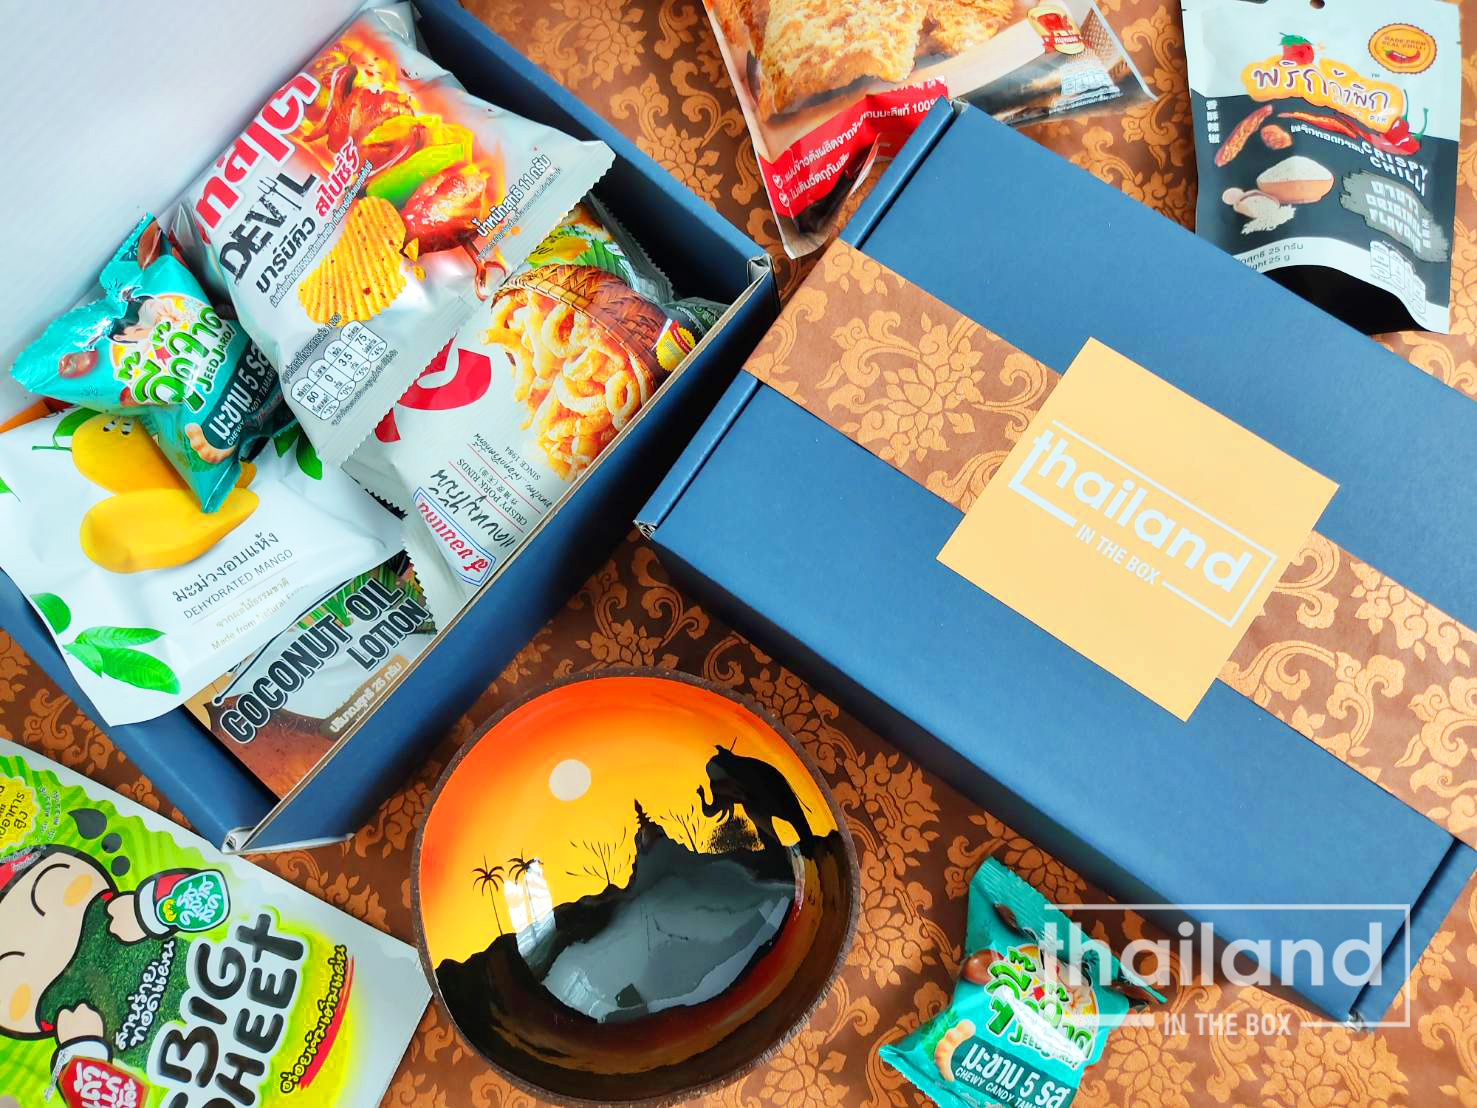 Thailand In The Box Promotes The Rich Thai Culture Through Snacks And Sweets